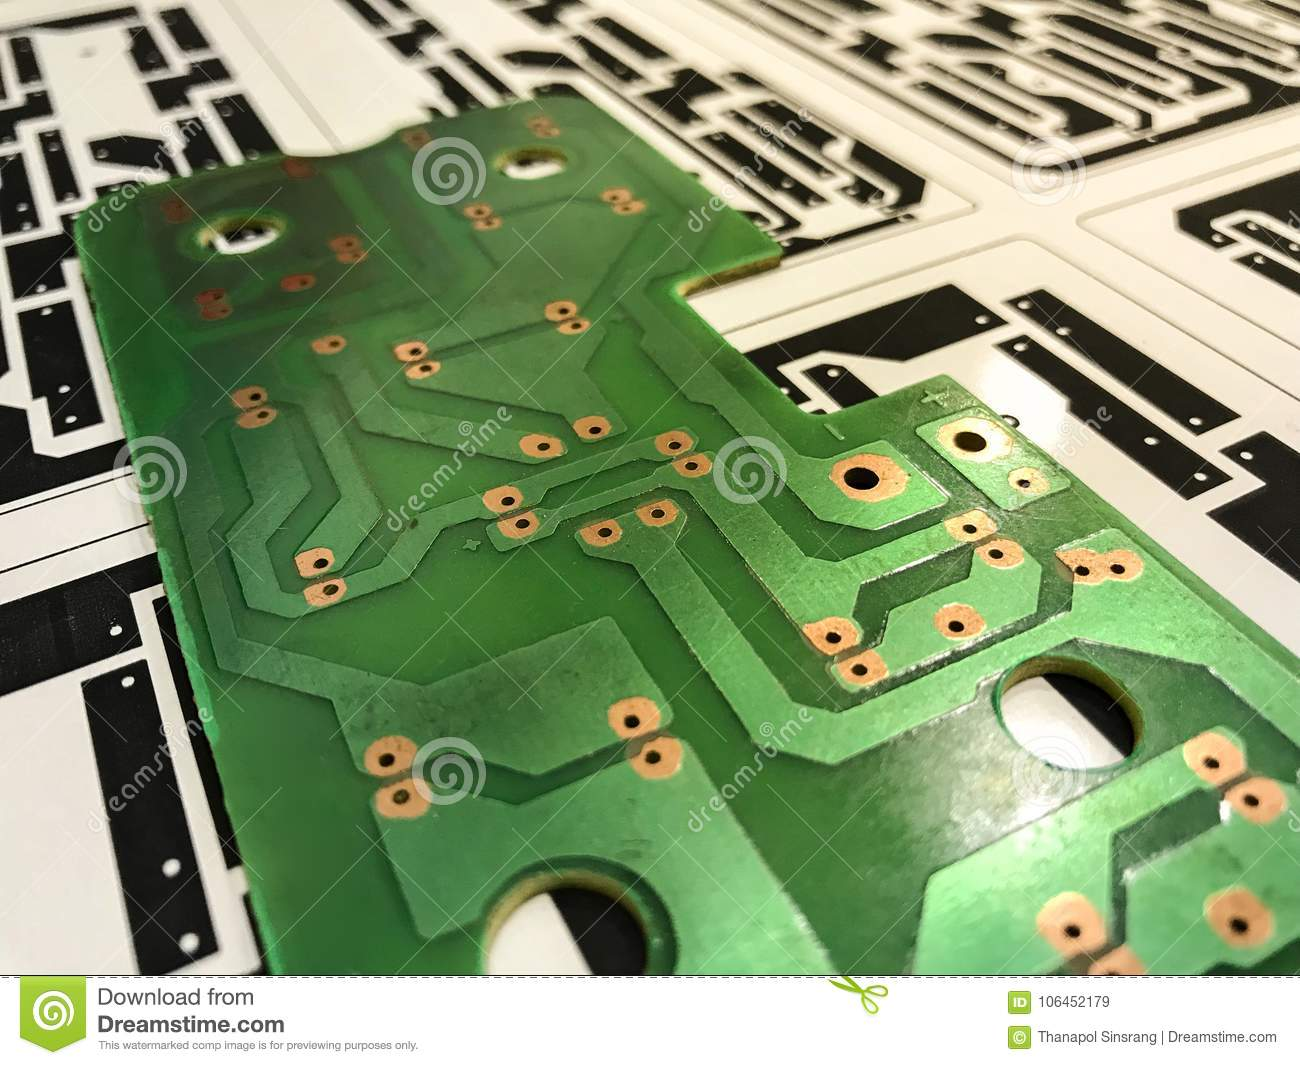 Printed Circuit Board Stock Image Of Macro Processor 106452179 Technology Conceptual Electronic Can Be Attributed To Your Work Presenting Future Concepts